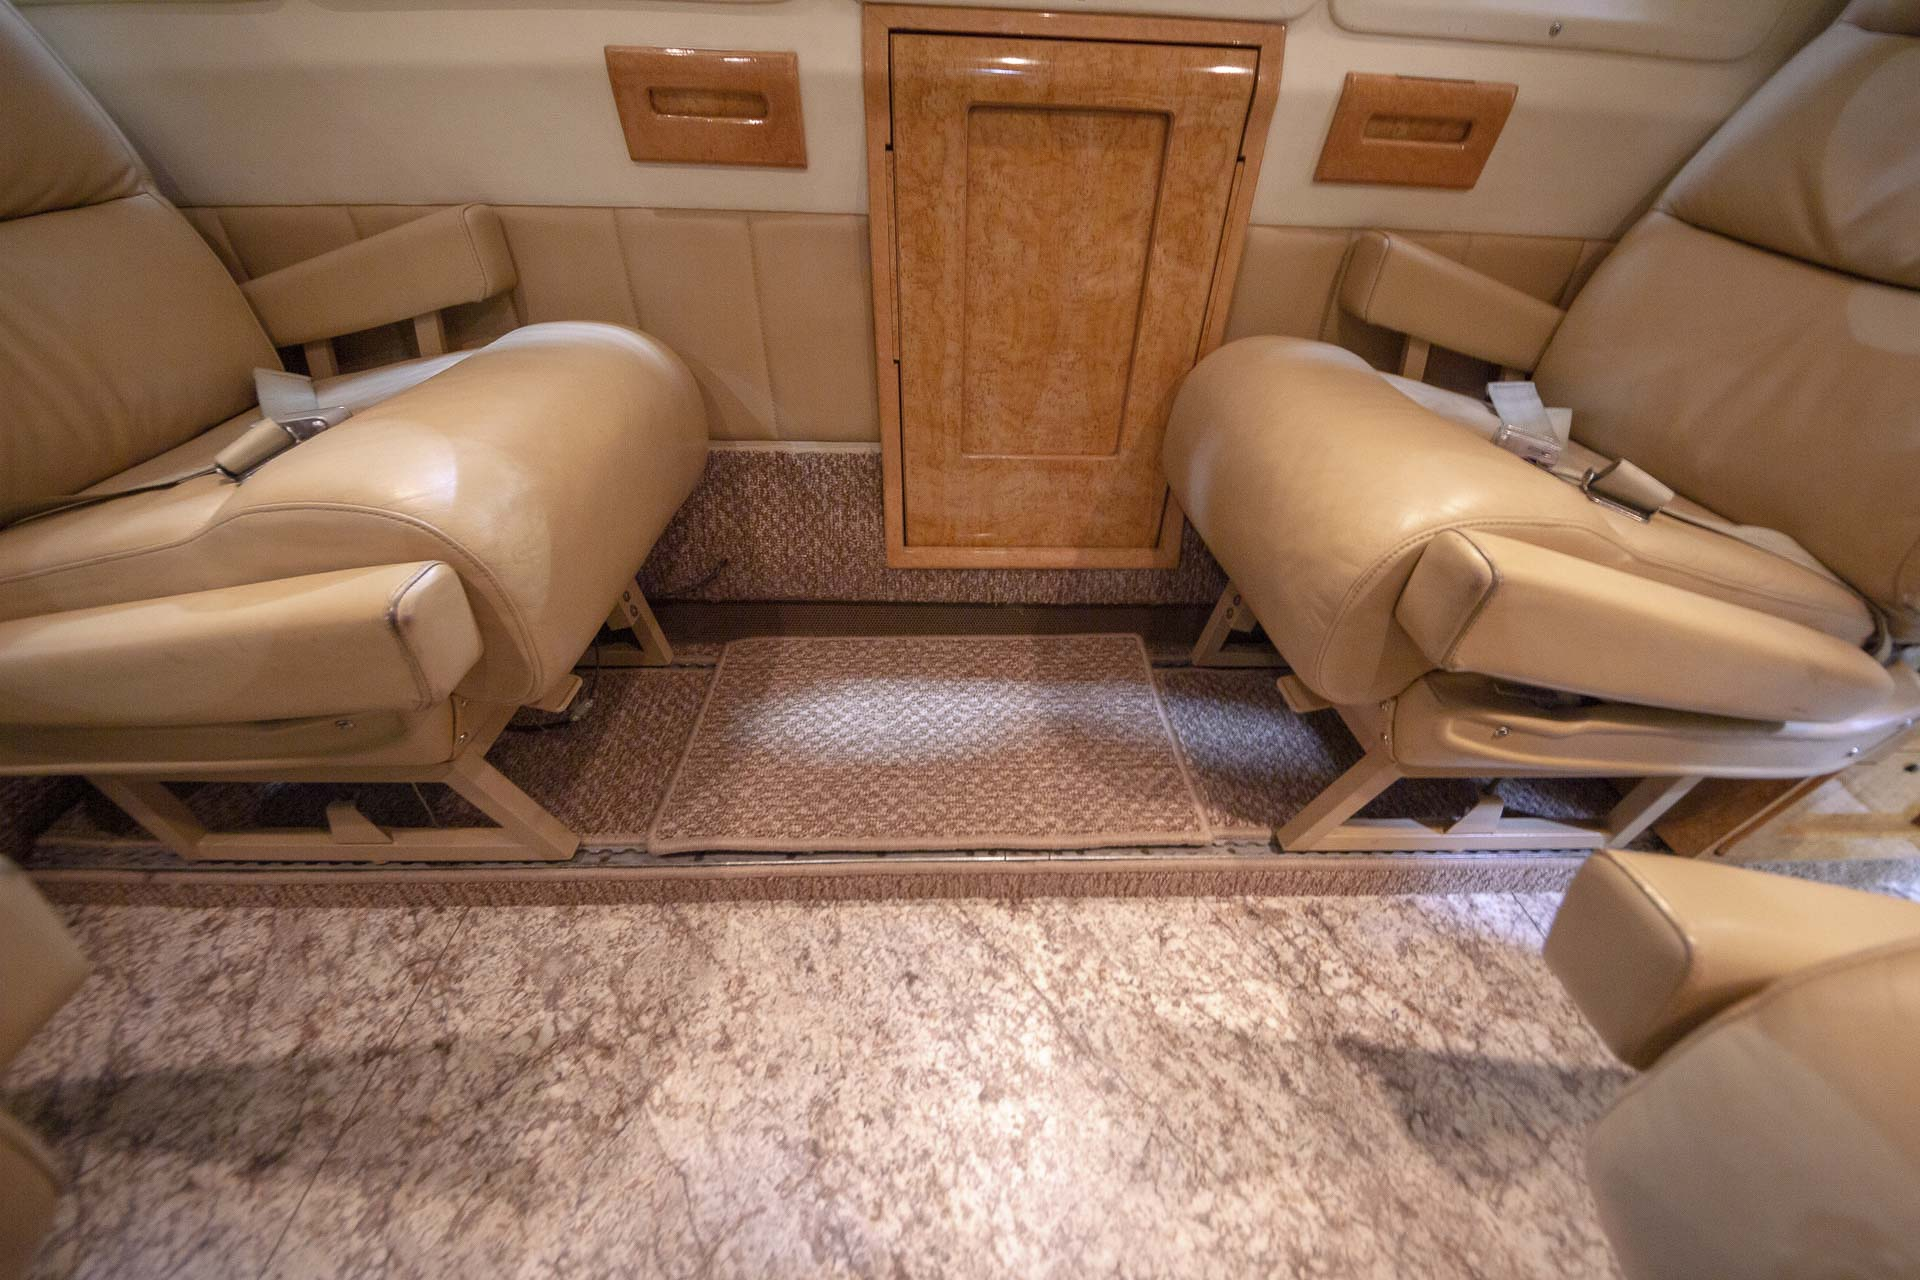 Kingair tile floor